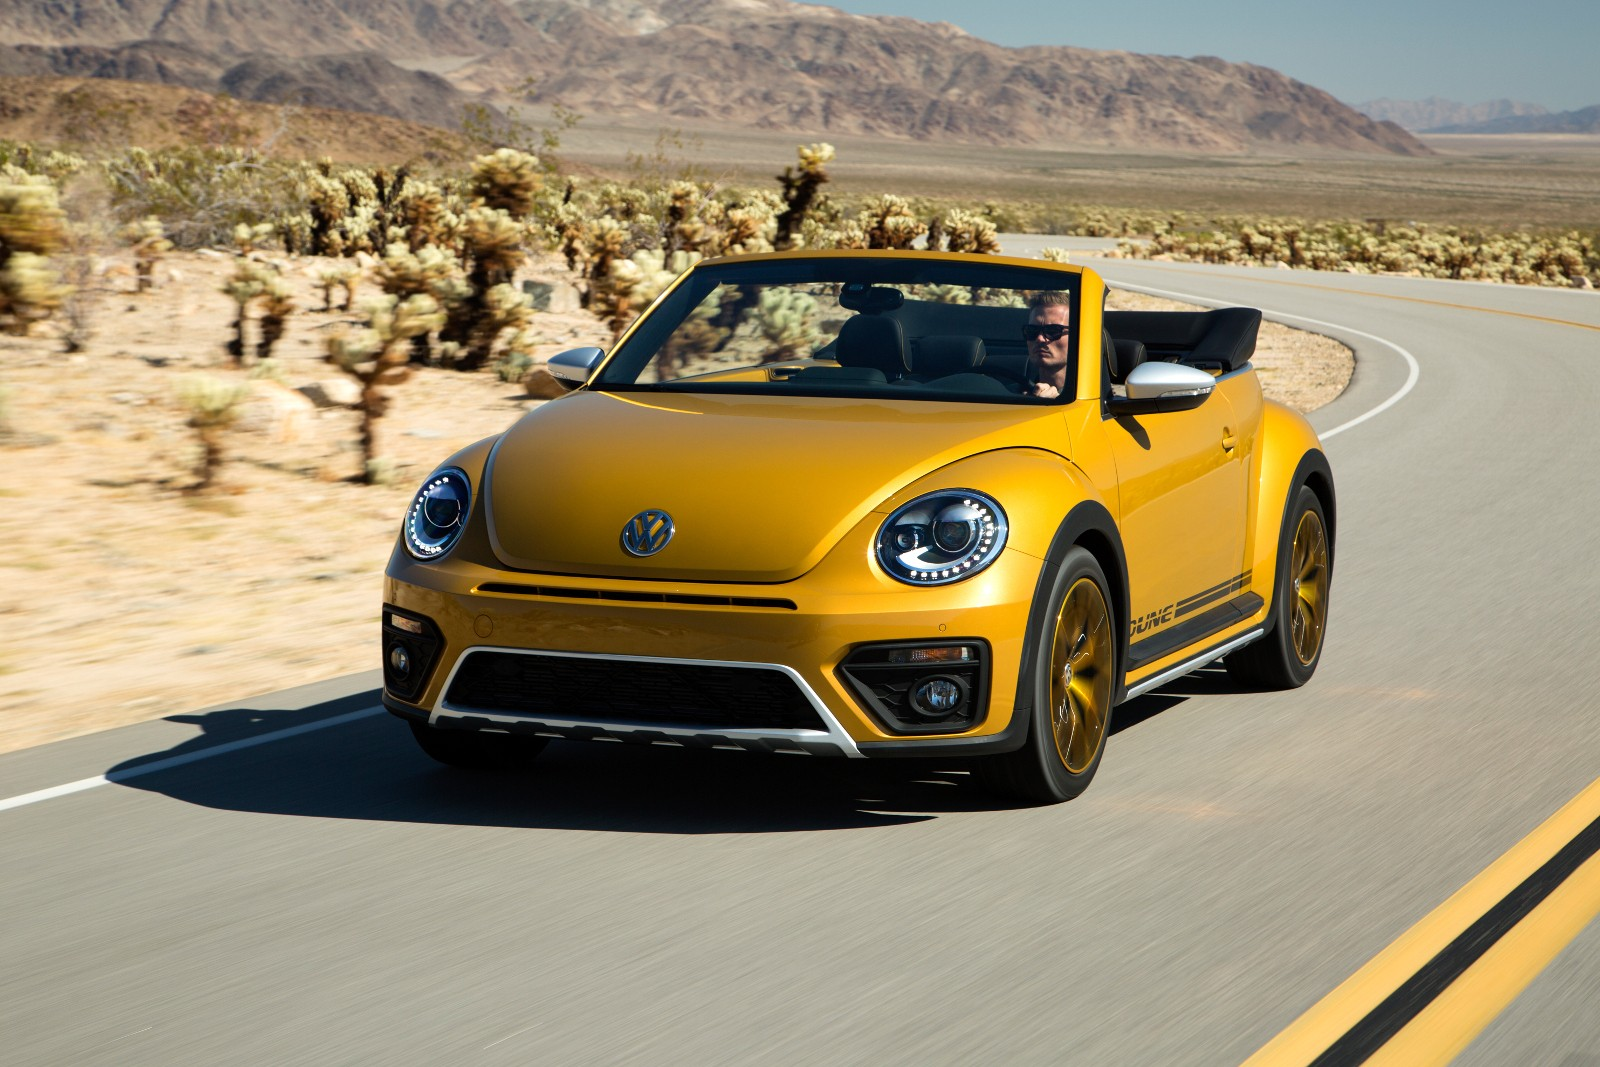 2017 volkswagen beetle dune revealed at la auto show available as a cabriolet autoevolution. Black Bedroom Furniture Sets. Home Design Ideas